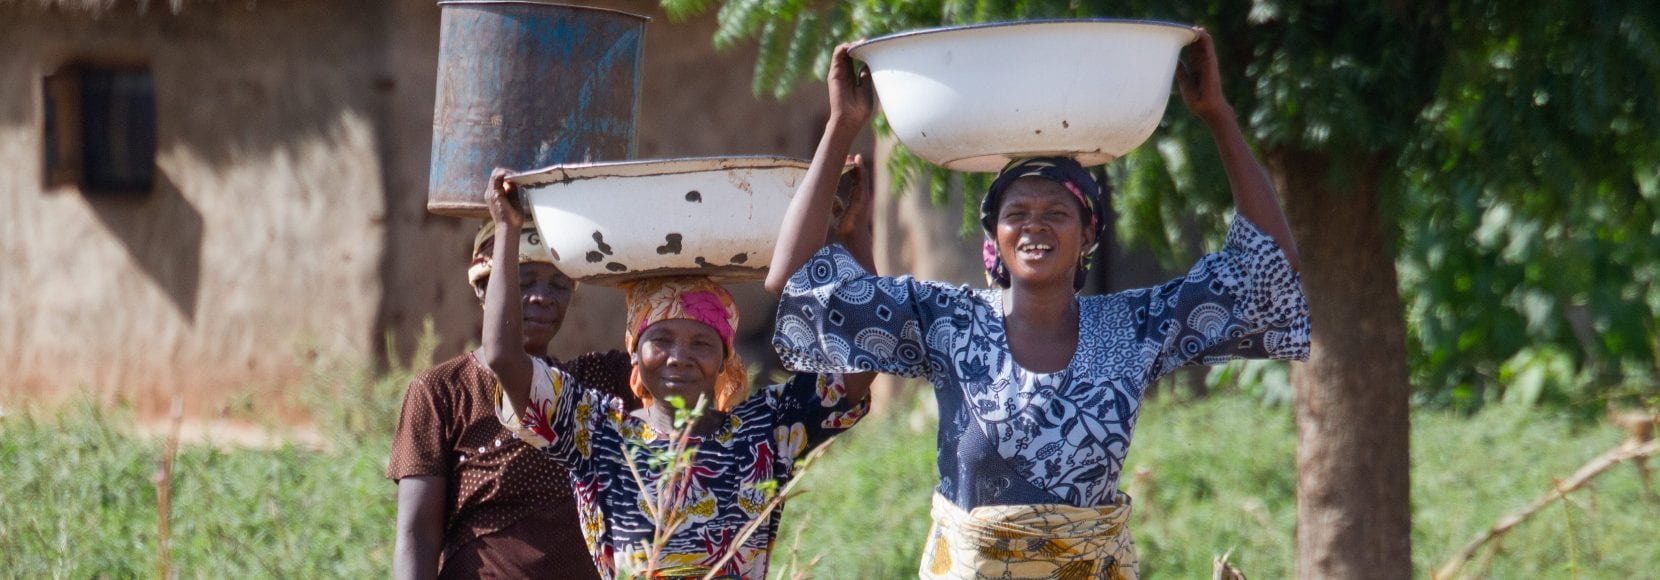 Sanatu Andani, 49, Mariama Andani, Damata Shihadu, 39 (left to right), carrying water from tap for Nyebu Be Yoona Shea Butter Processing Group, Kanfiehiyili village, Tamale, Ghana.